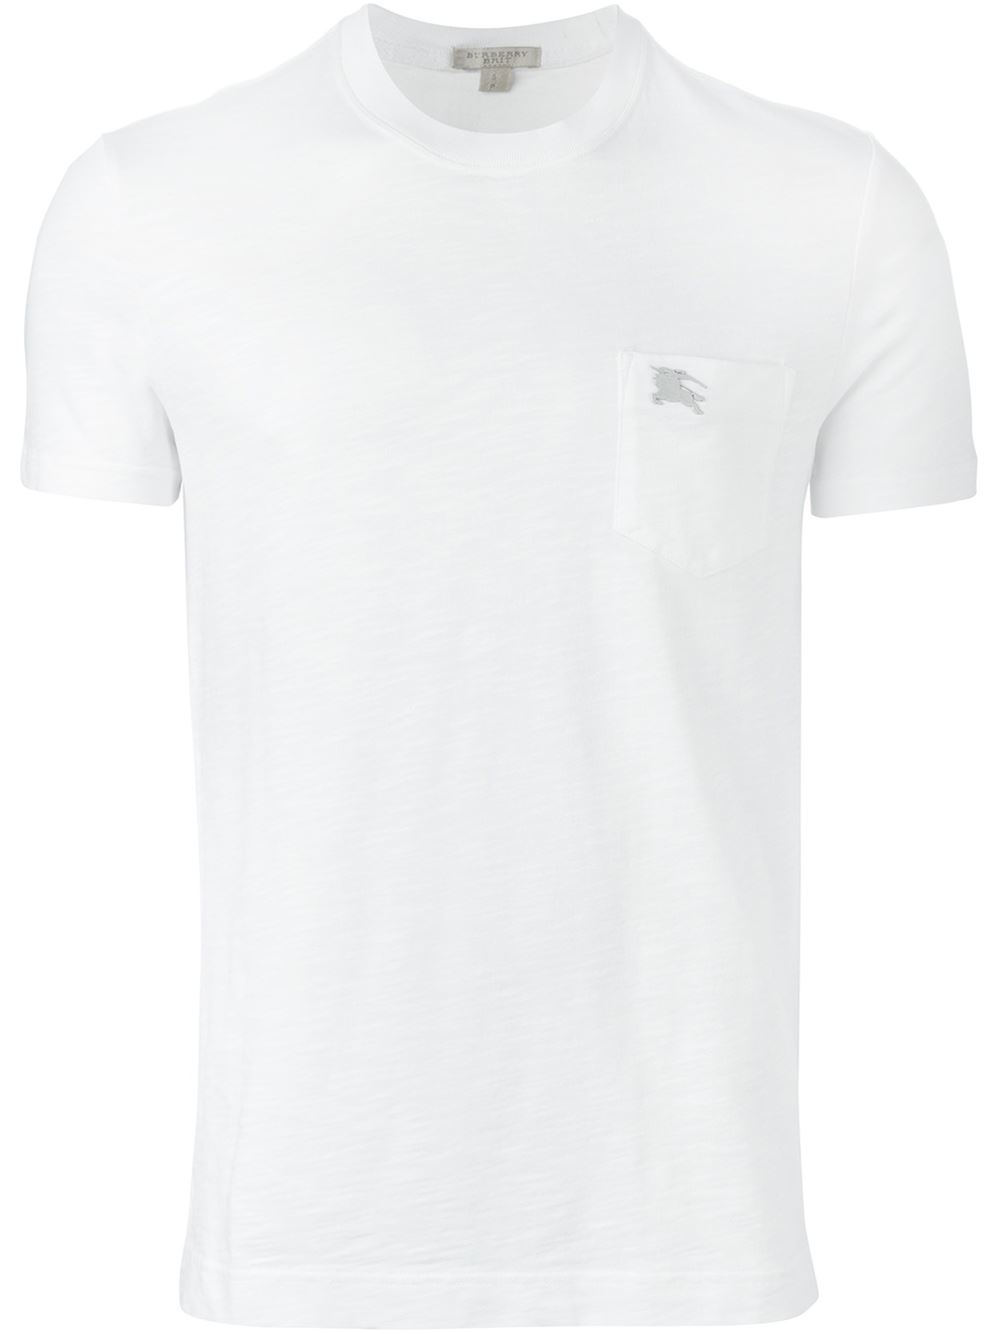 lyst burberry brit logo pocket t shirt in white for men. Black Bedroom Furniture Sets. Home Design Ideas